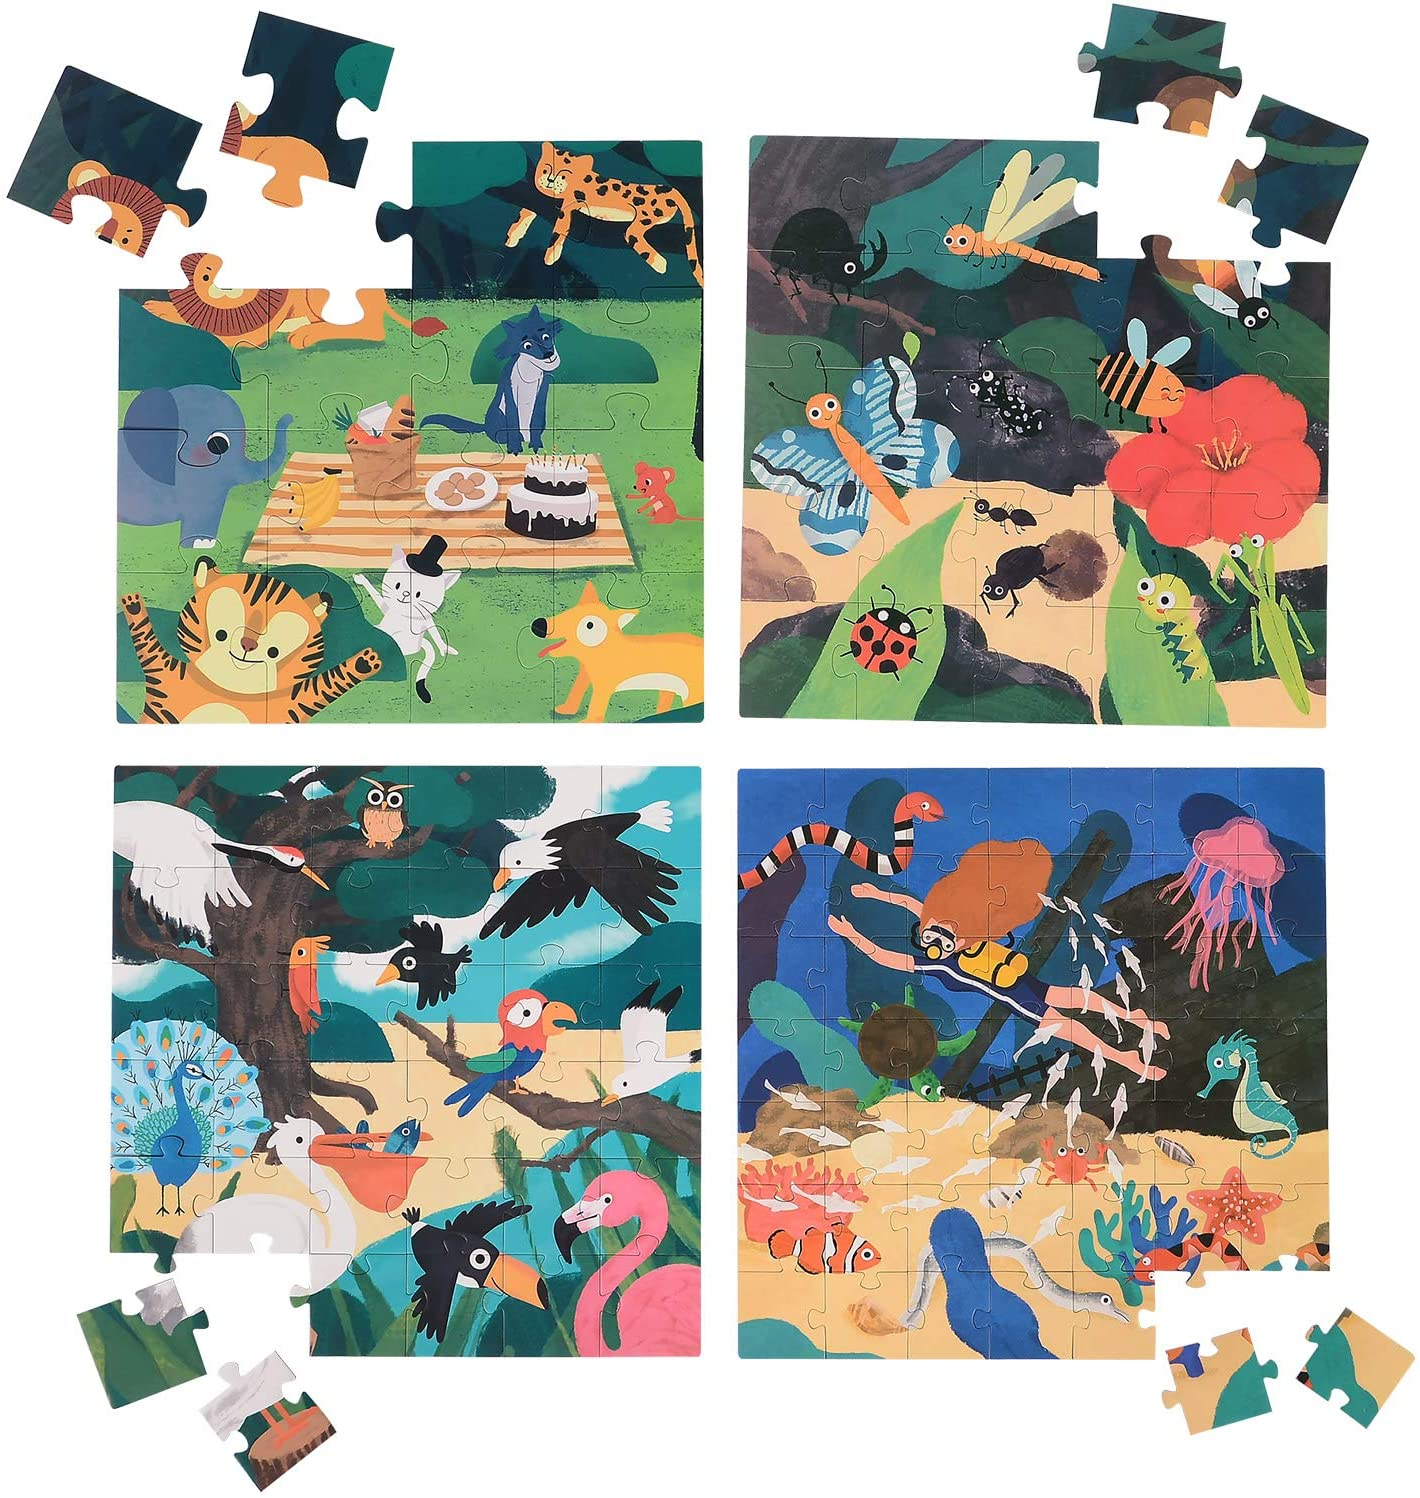 MAGIFIRE Jigsaw Puzzles 4-in-1-Box,Toys Gifts for Kids Adults Teens,Varying Difficulty Levels